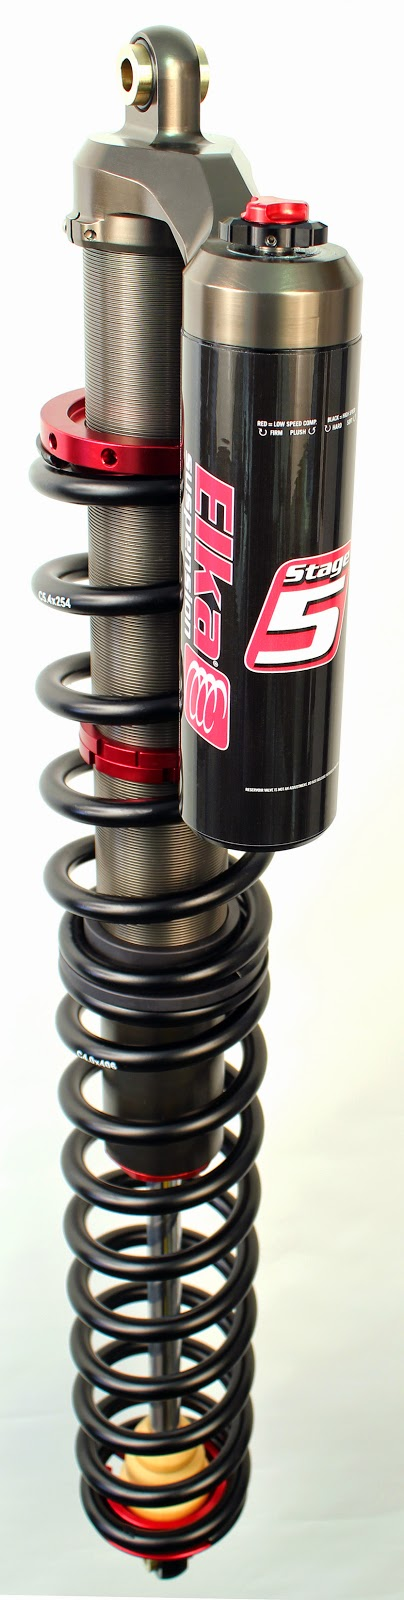 Elka Suspension goes bigger and better with its new 2 5